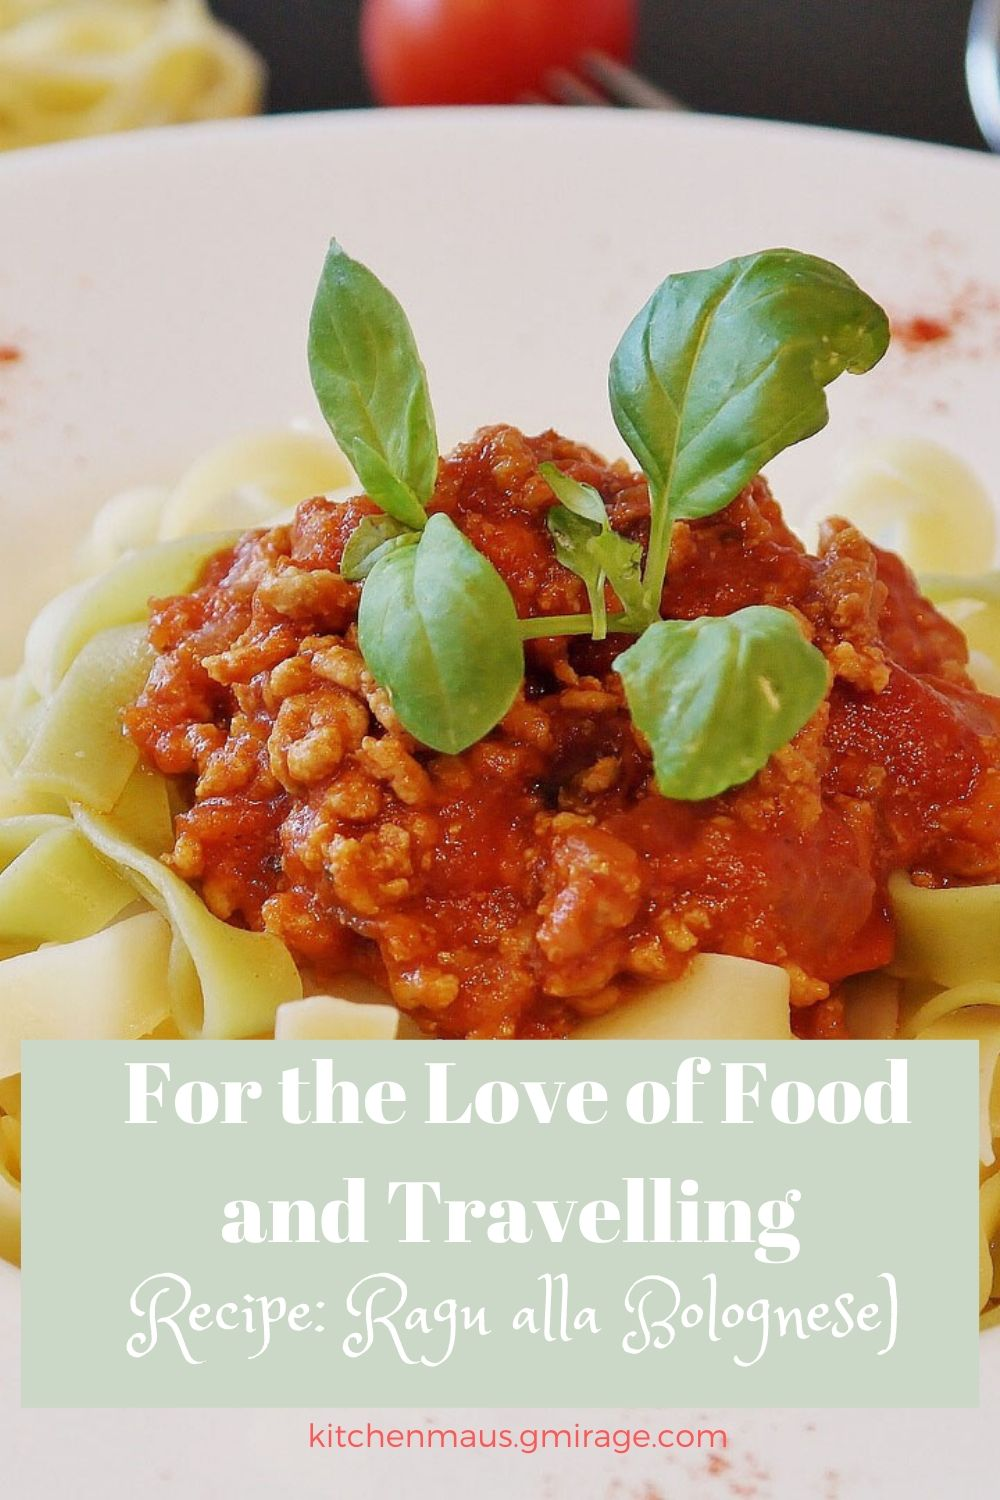 For the Love of Food and Travelling (Recipe: Ragu alla Bolognese)